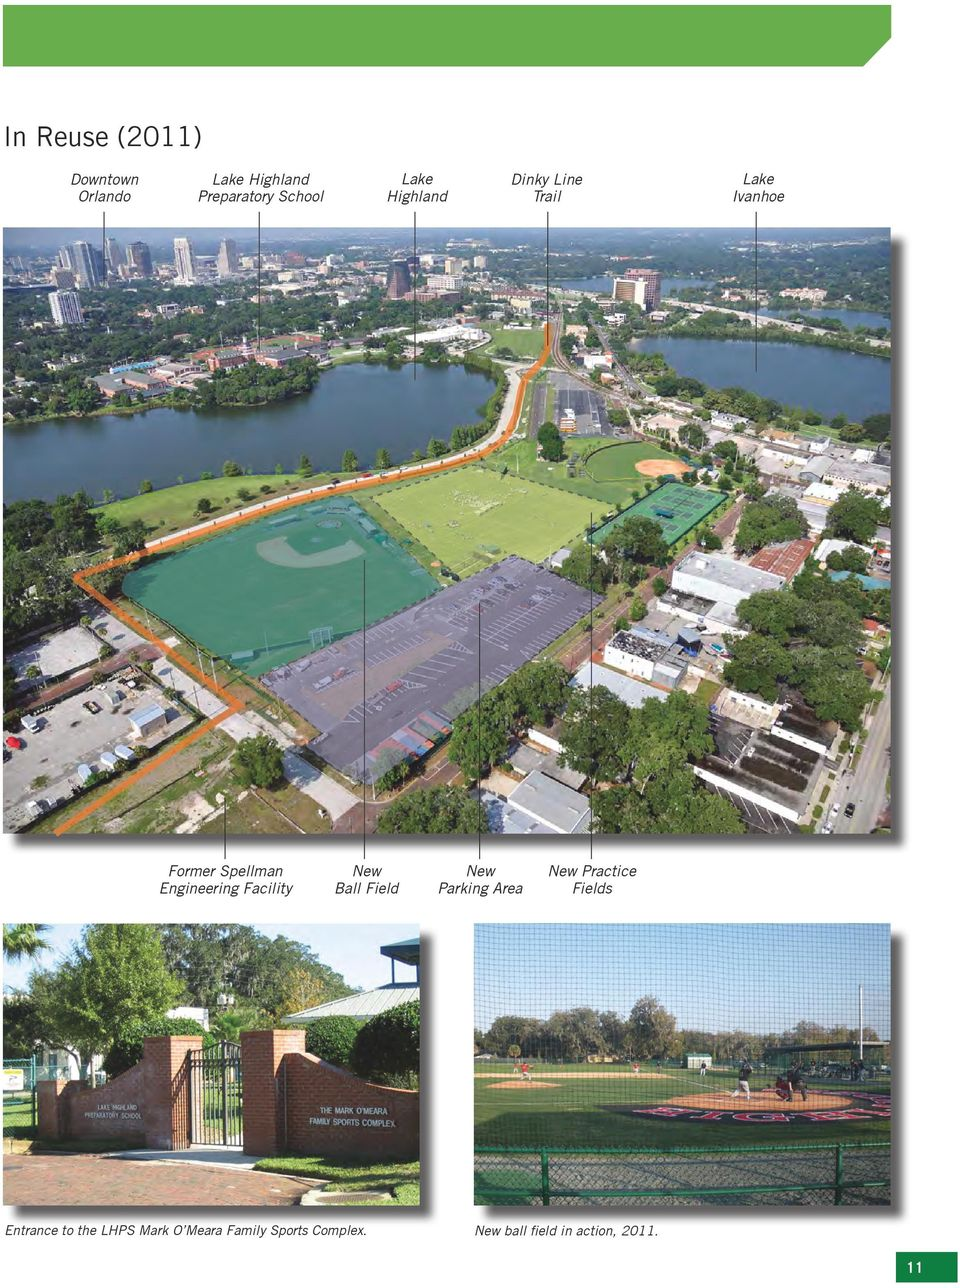 Facility New Ball Field New Parking Area New Practice Fields Entrance to